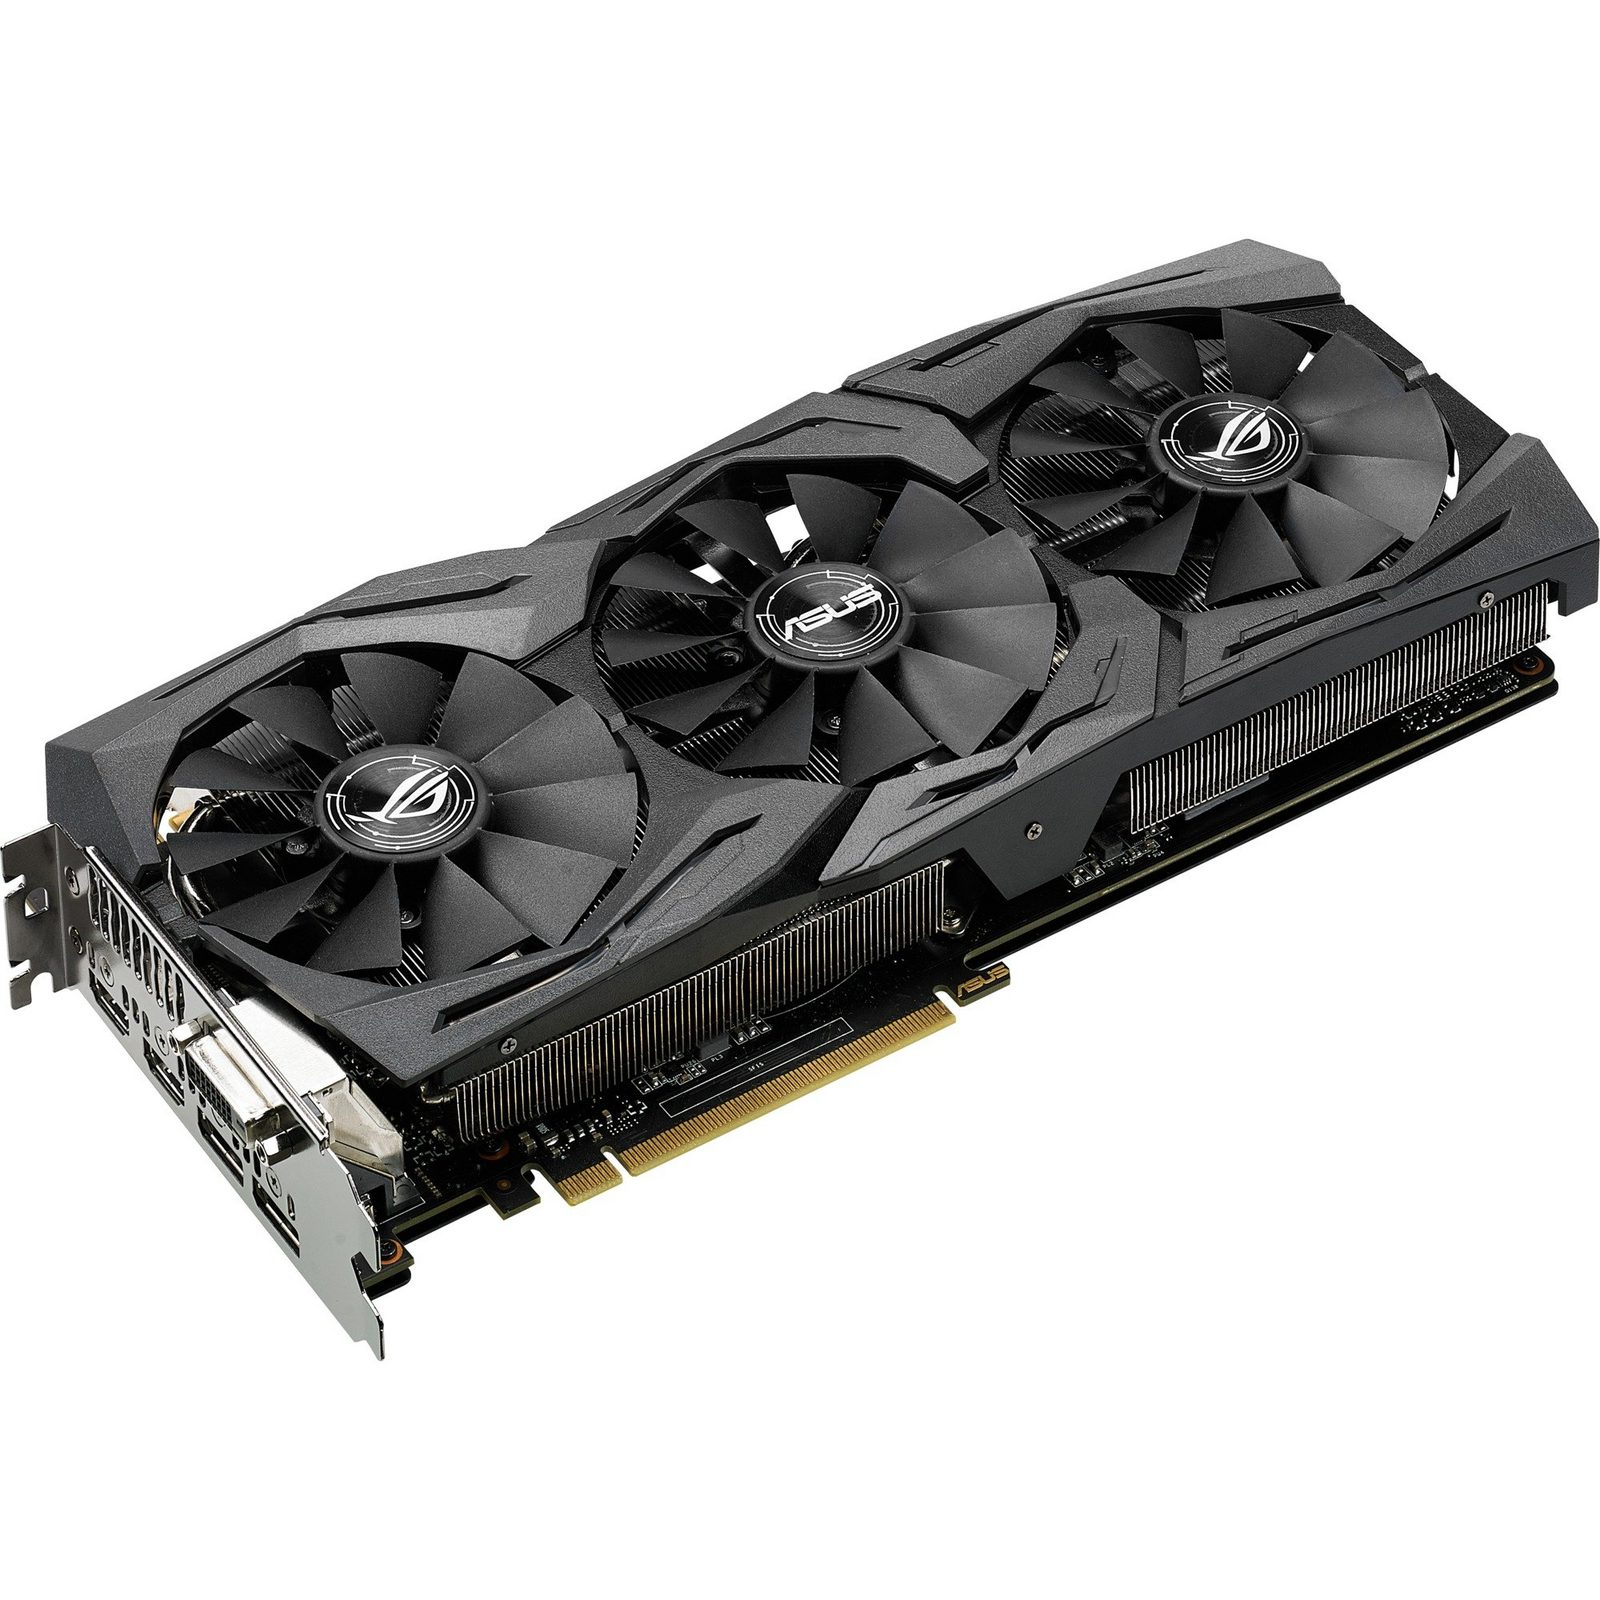 ASUS Grafikkarte »GeForce GTX 1070 STRIX GAMING« - broschei